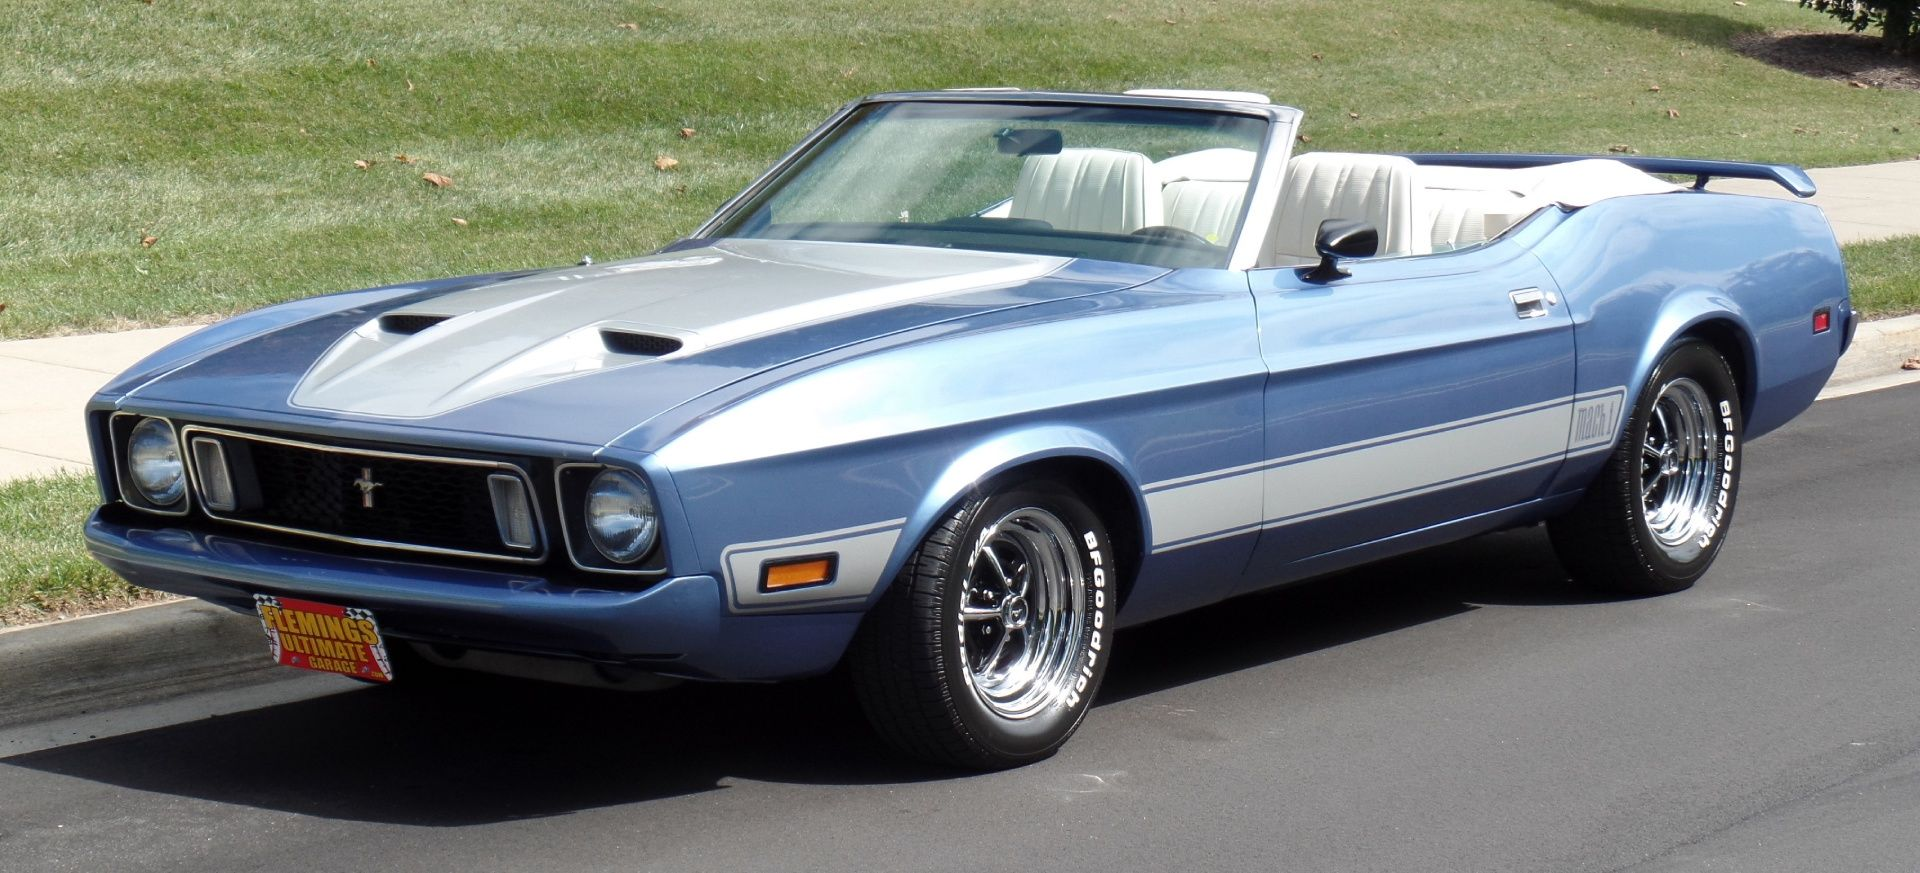 ars for Sale | Flemings Ultimate Garage - :: 1973 Ford Mustang Mach ...